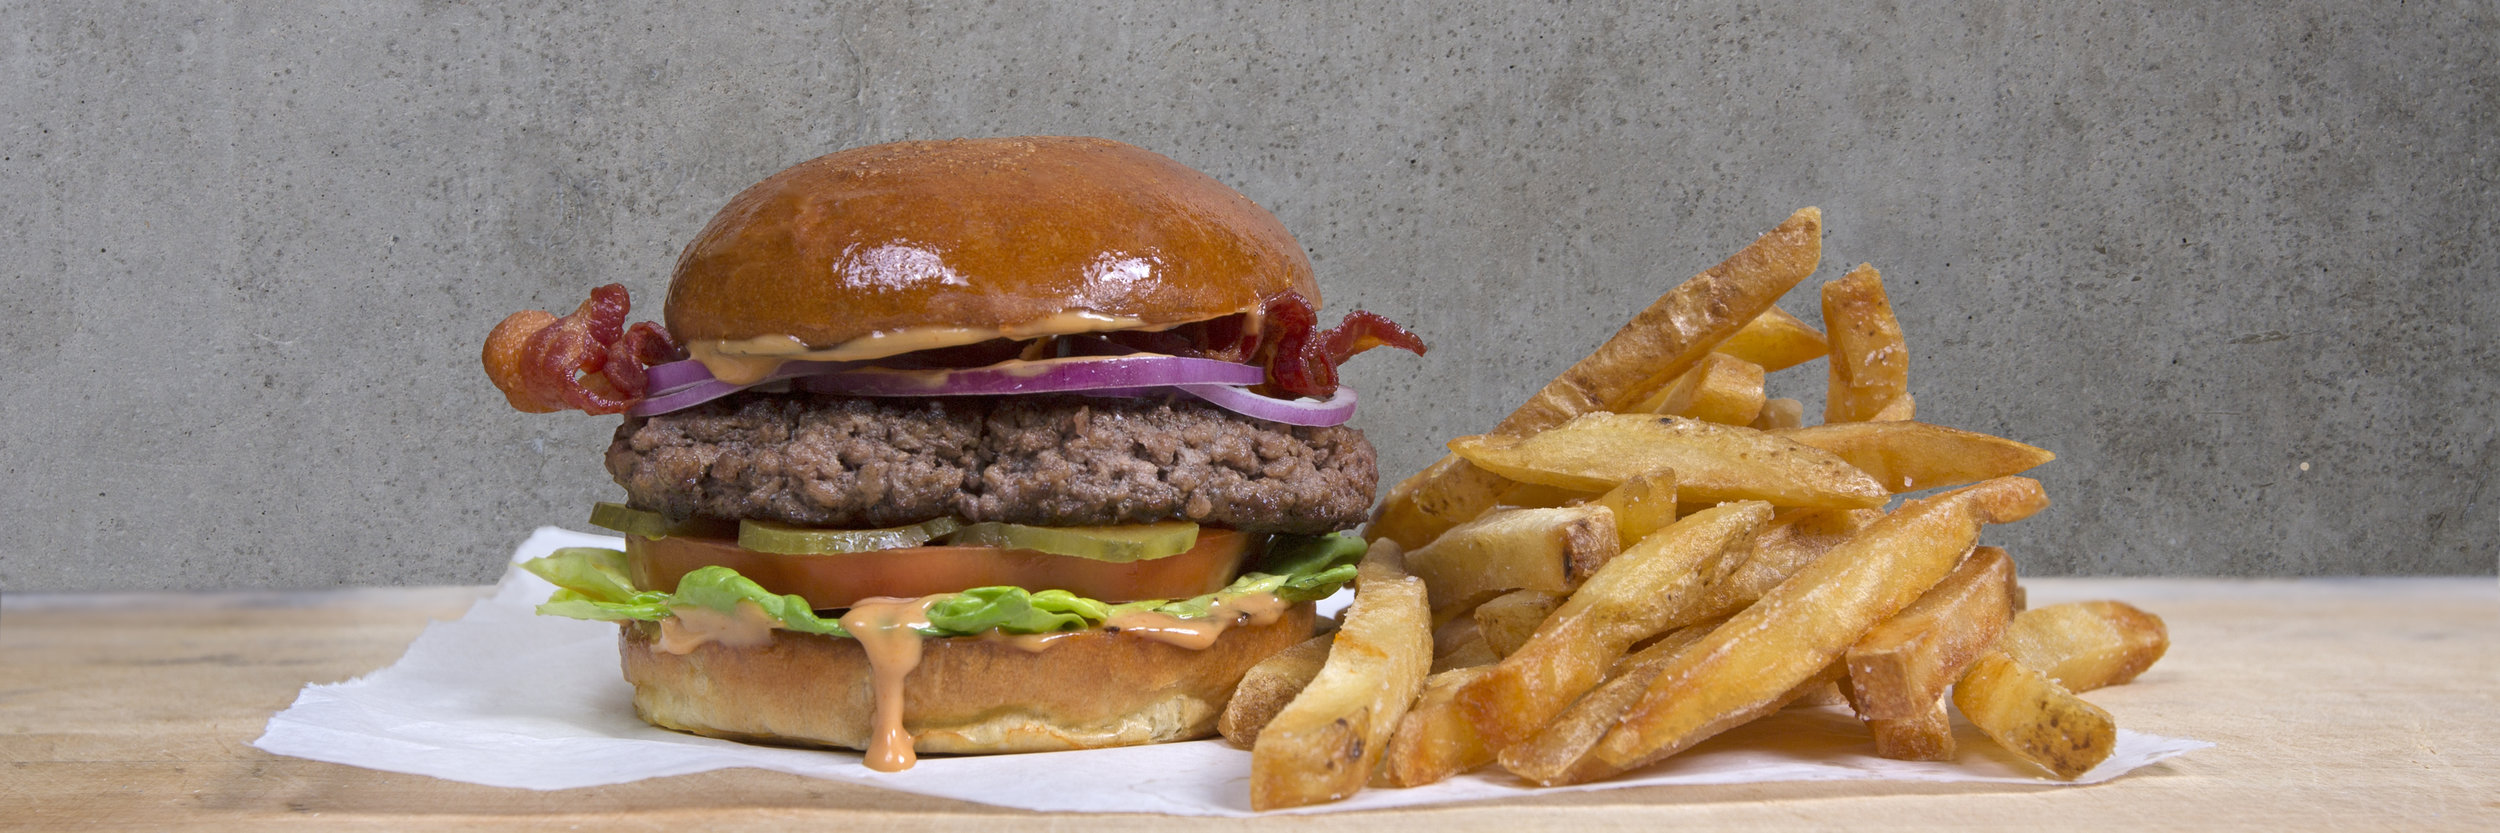 burger and fries comp_cropped.jpg